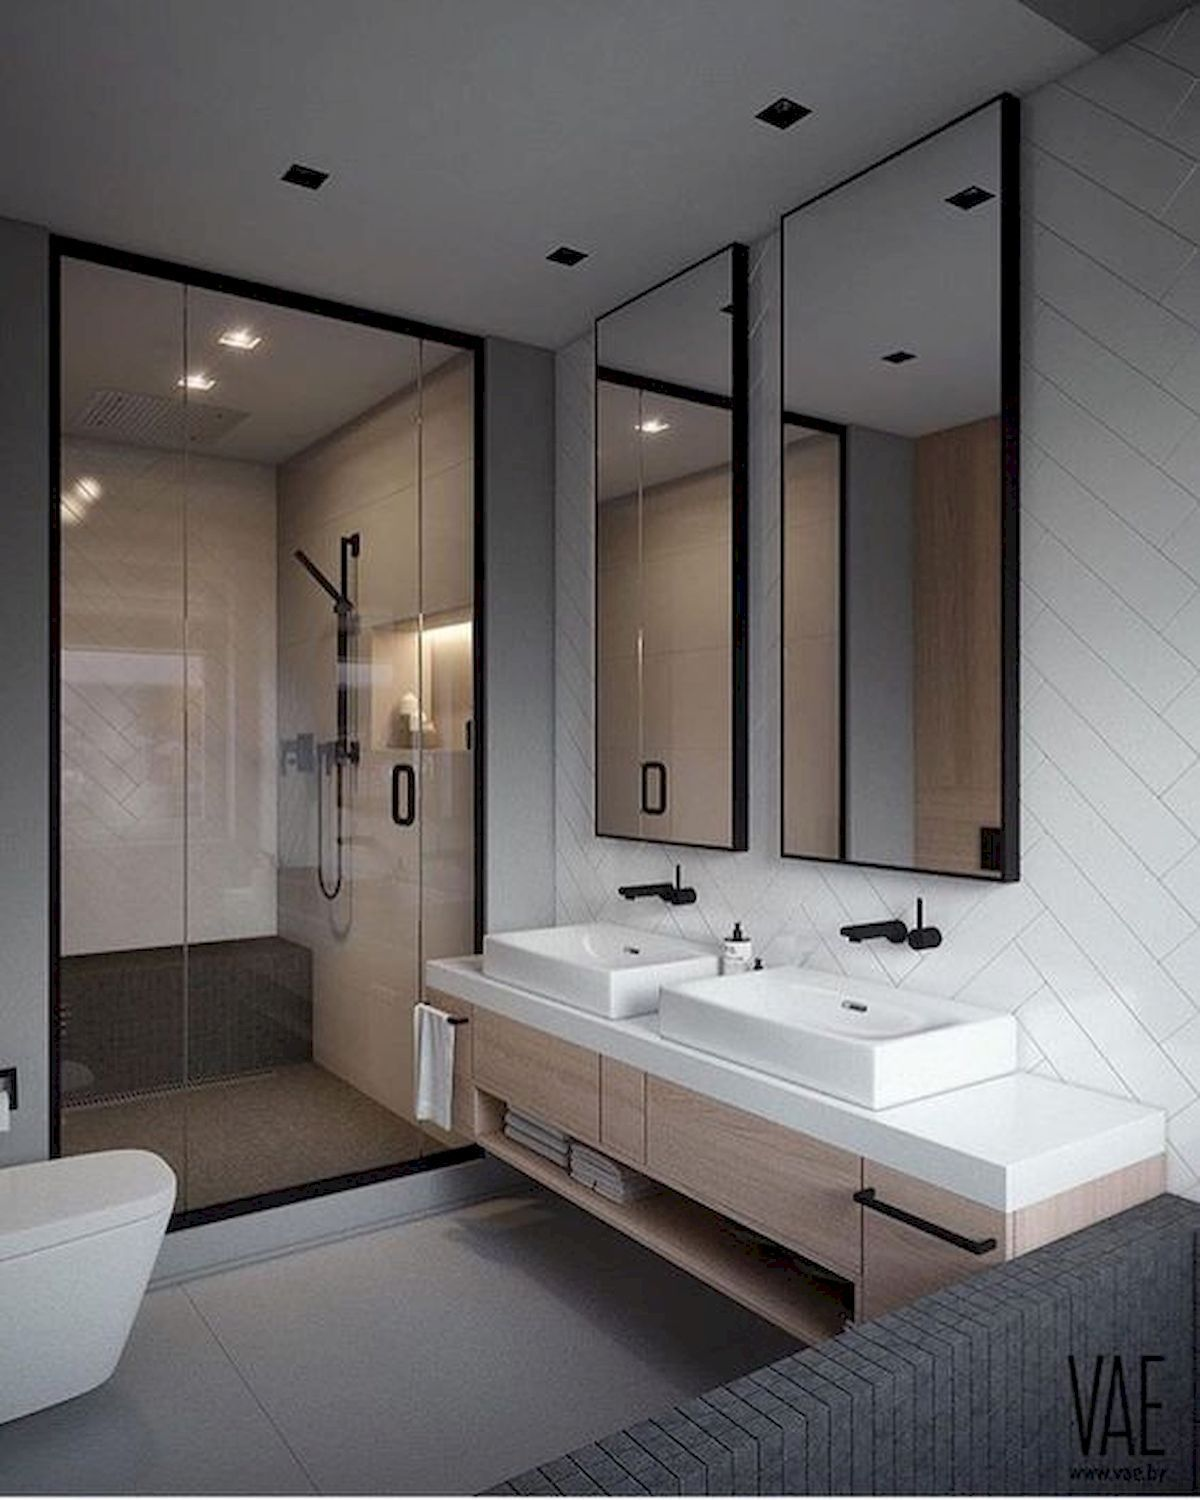 25+ Minimalist Small Bathroom Ideas Feel the Big Space ... on Simple Bathroom Designs For Small Spaces  id=44089